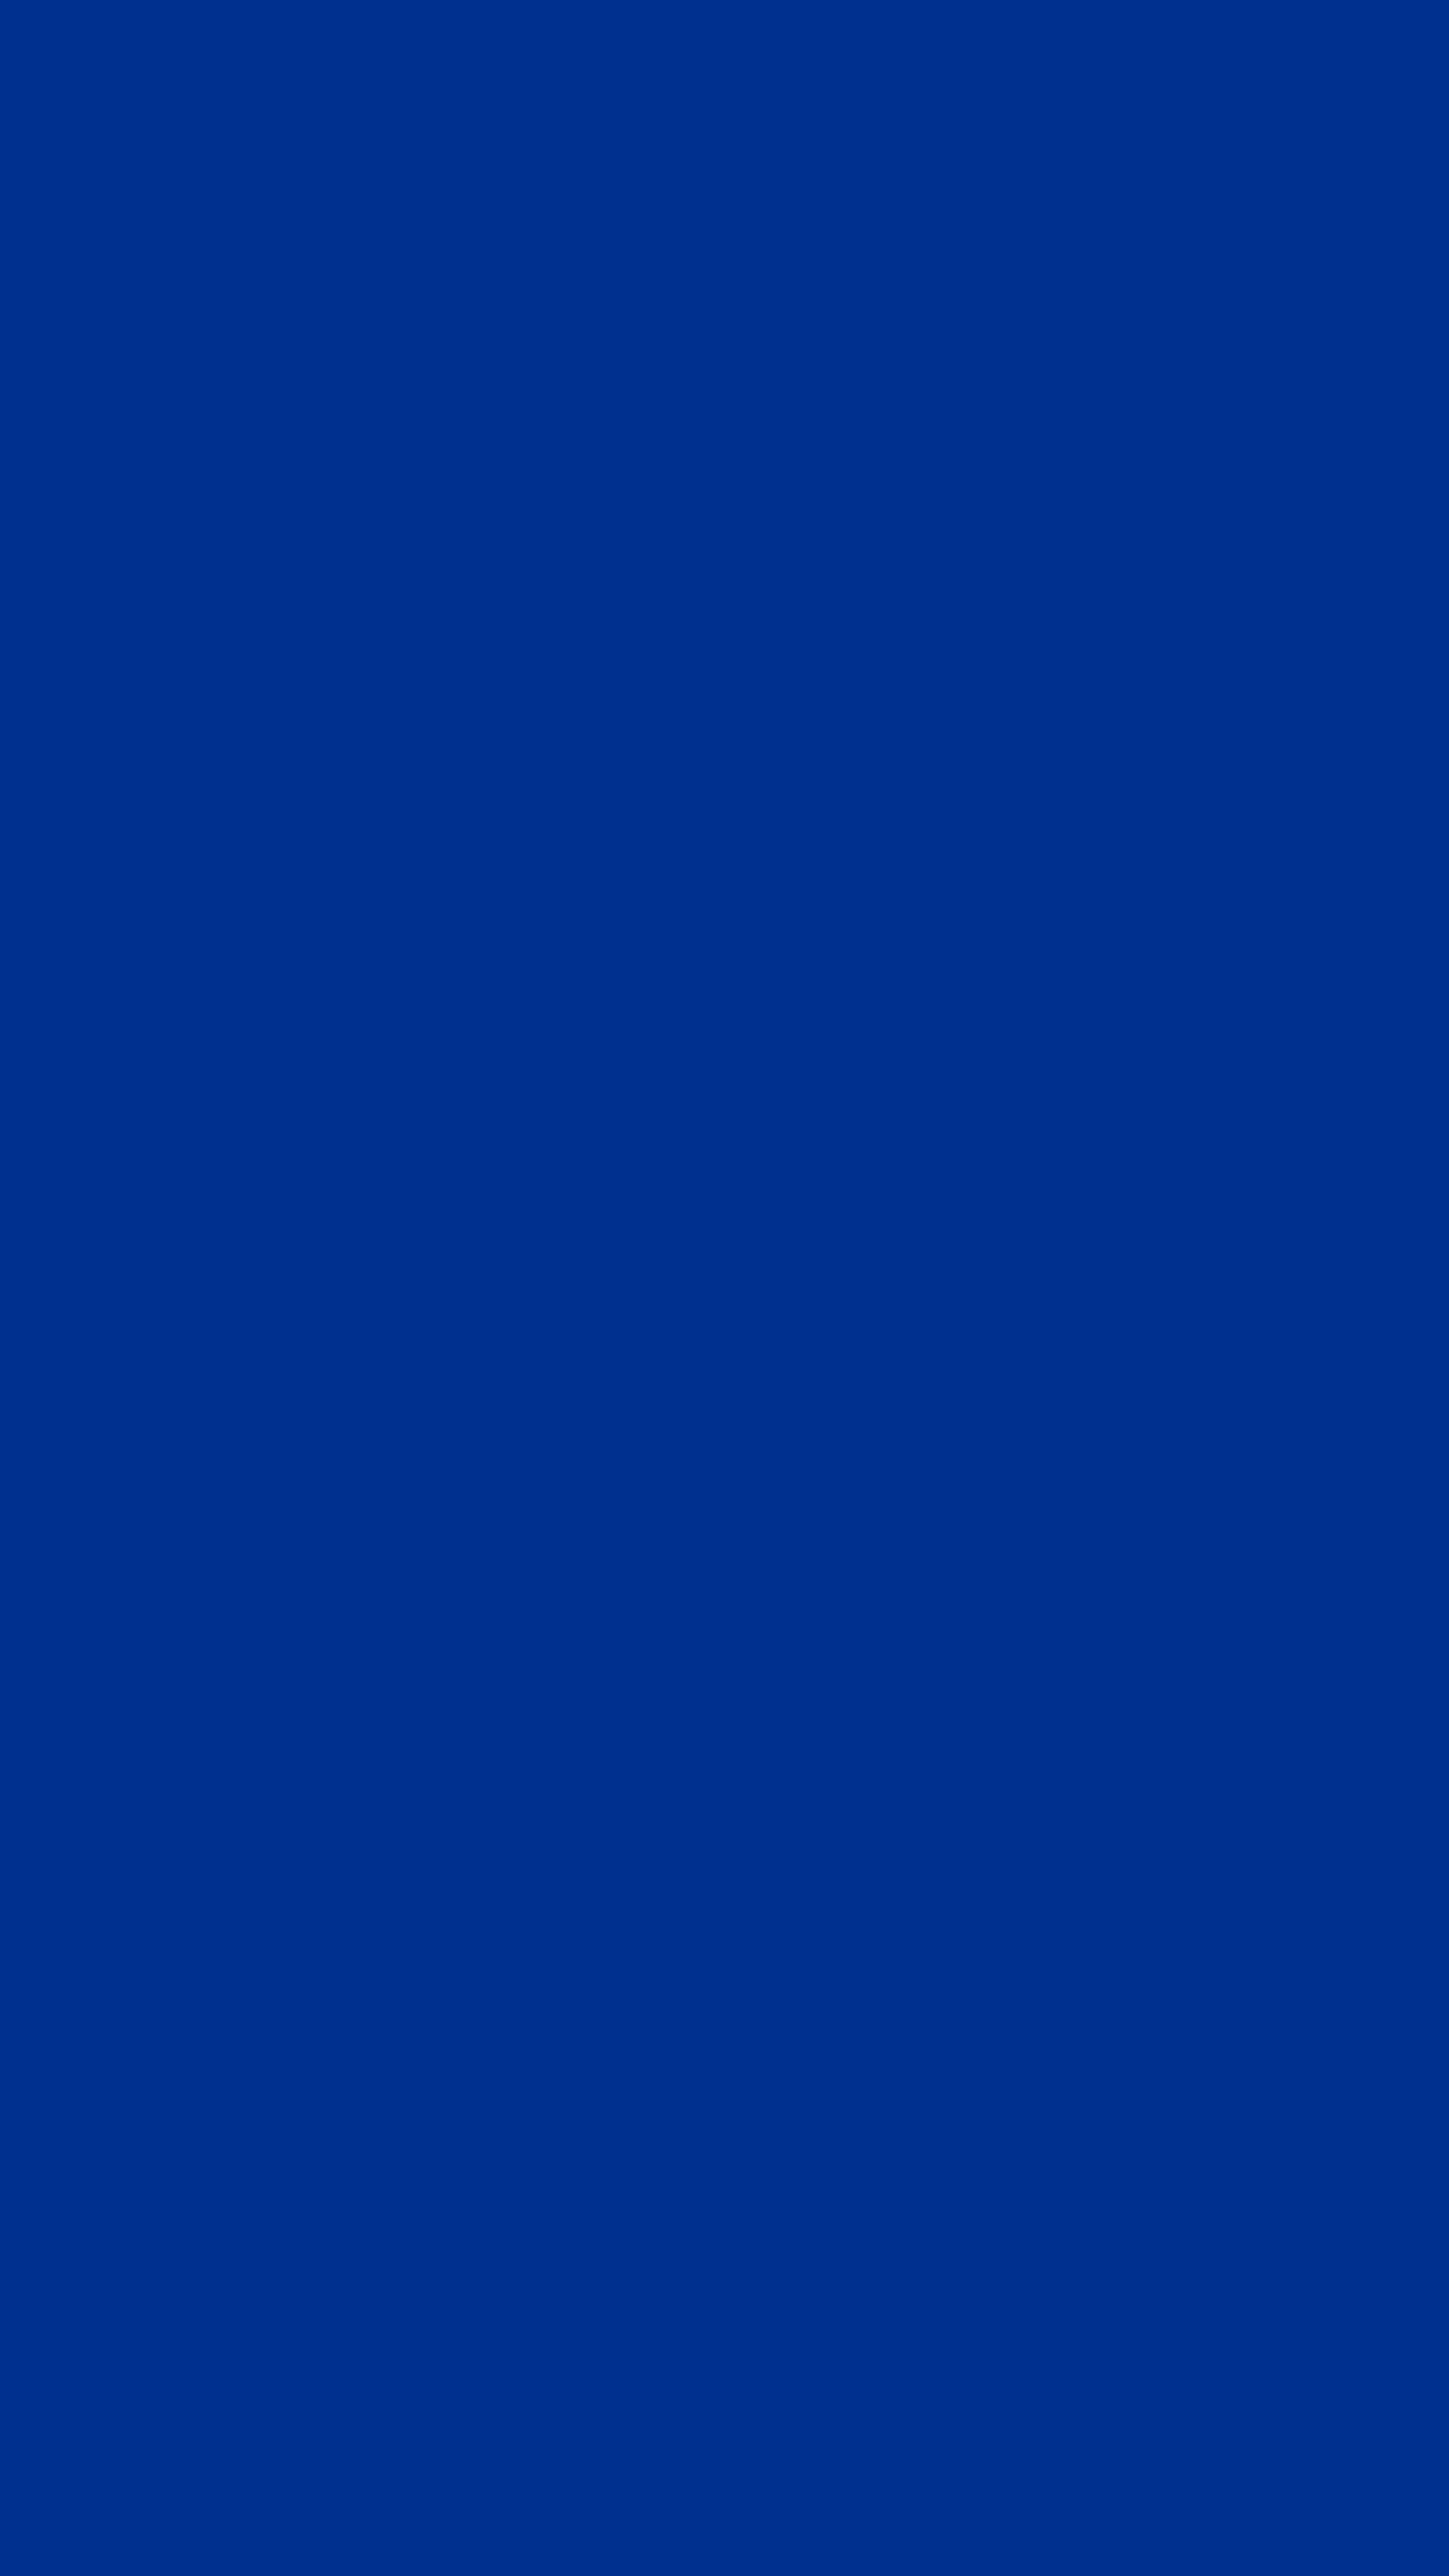 Air Force Dark Blue Solid Color Background Wallpaper for ...